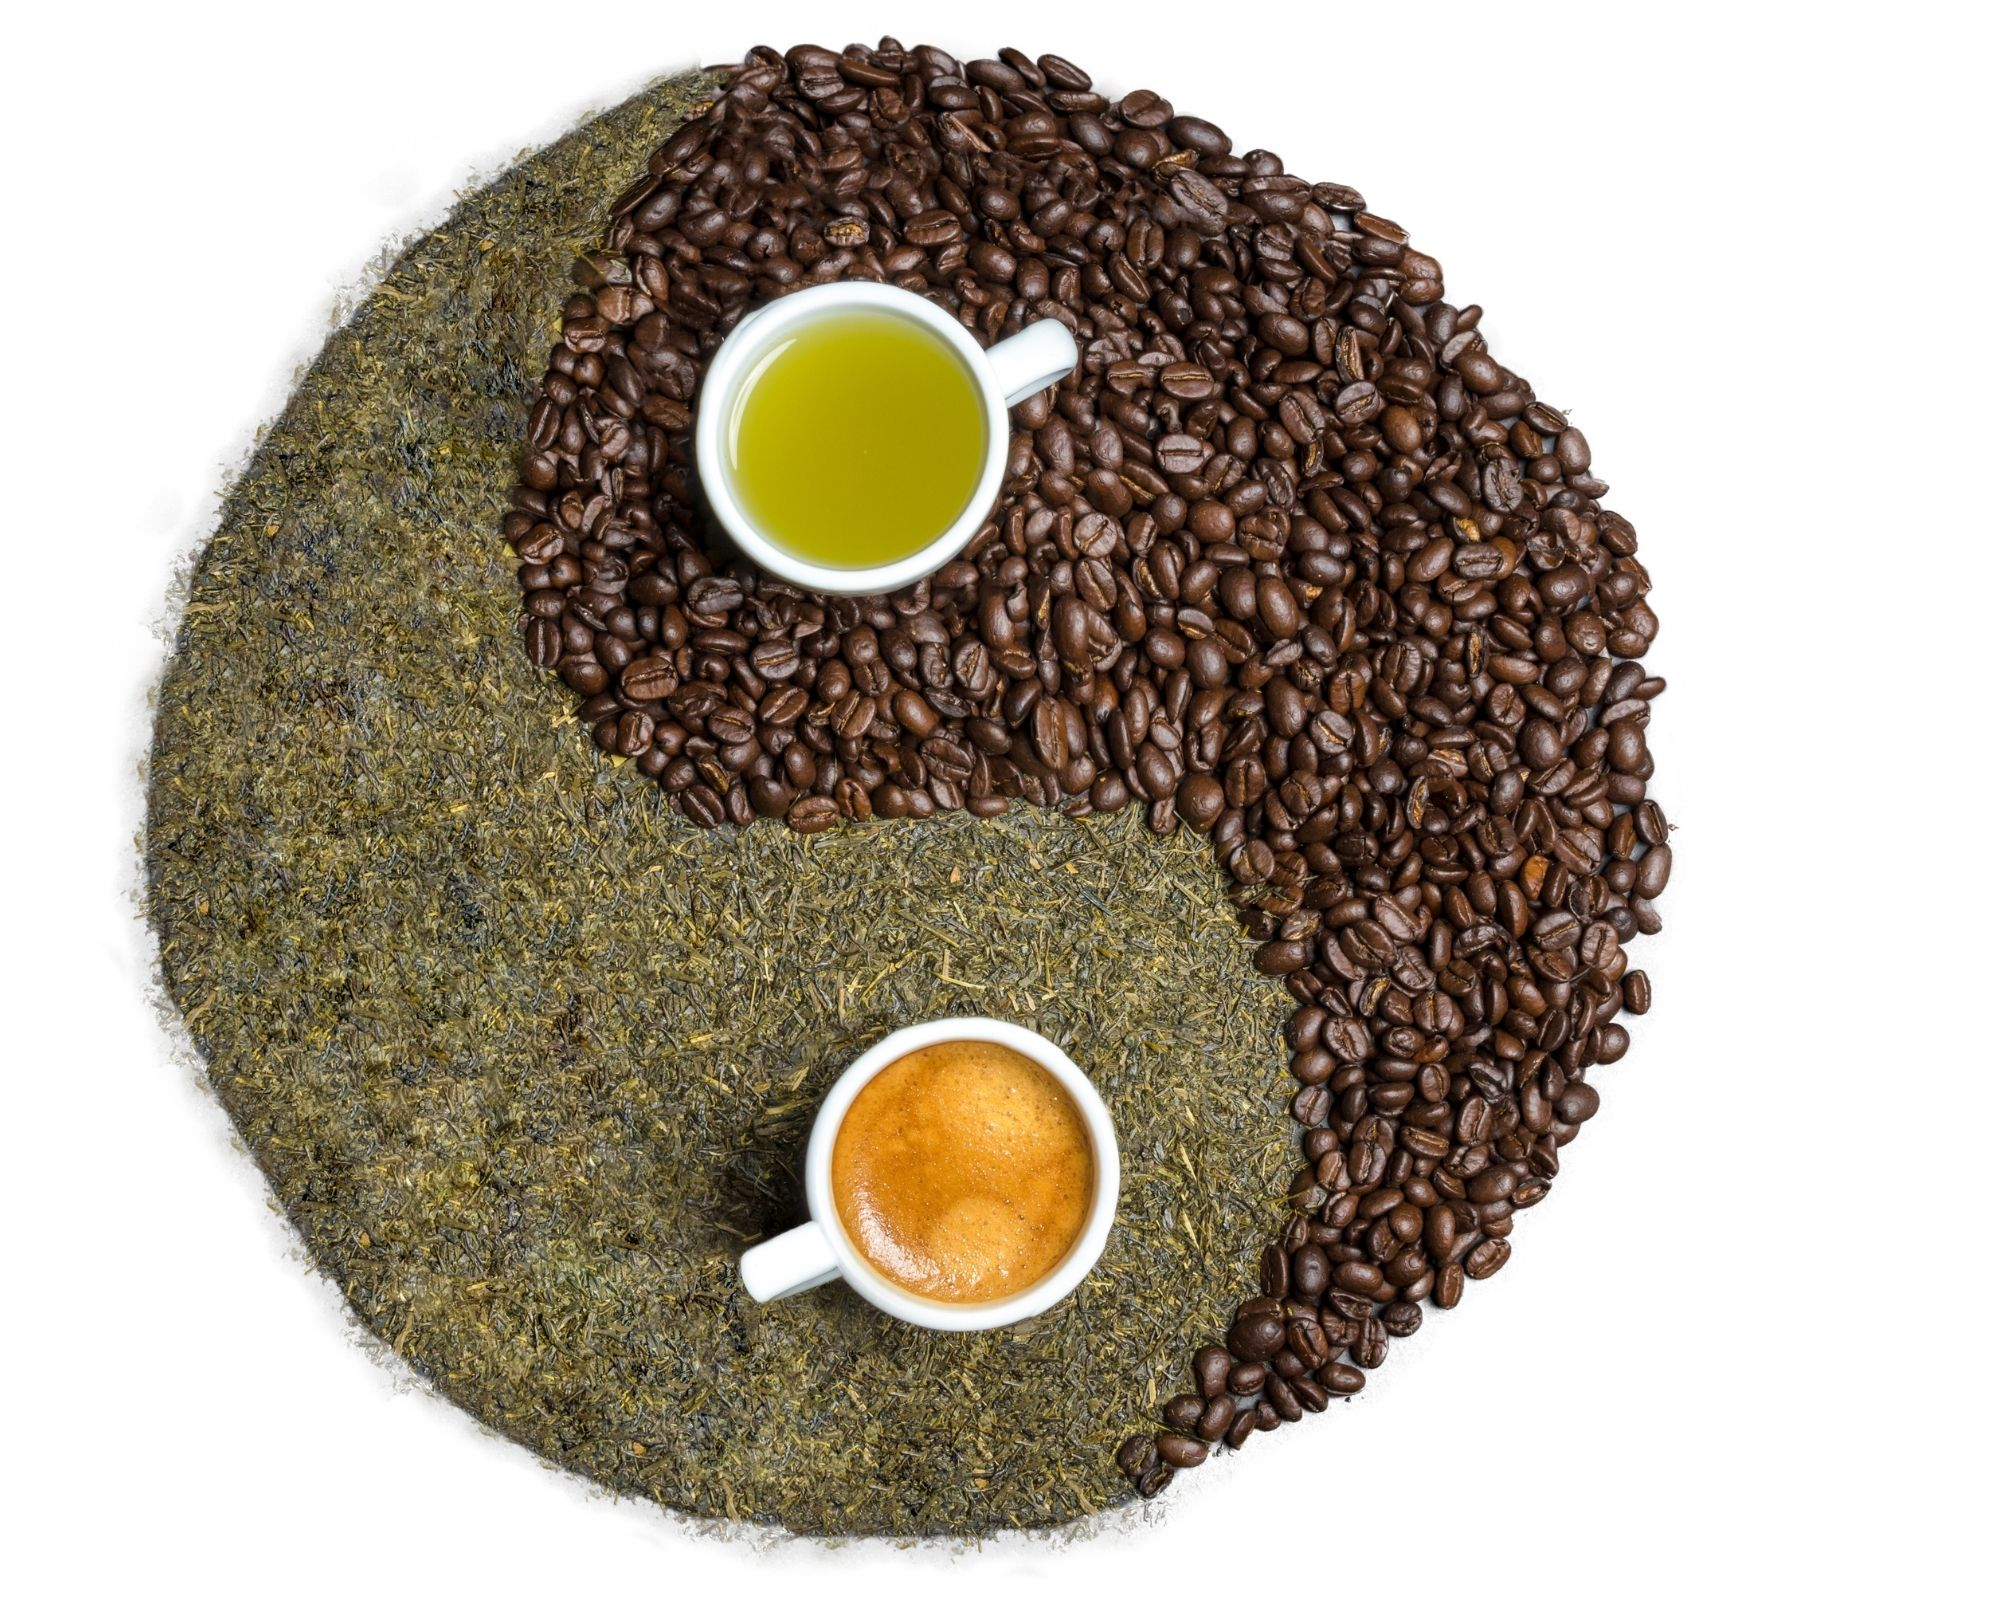 Coffee beans and tea leaves made into the Ying and Yang sign.